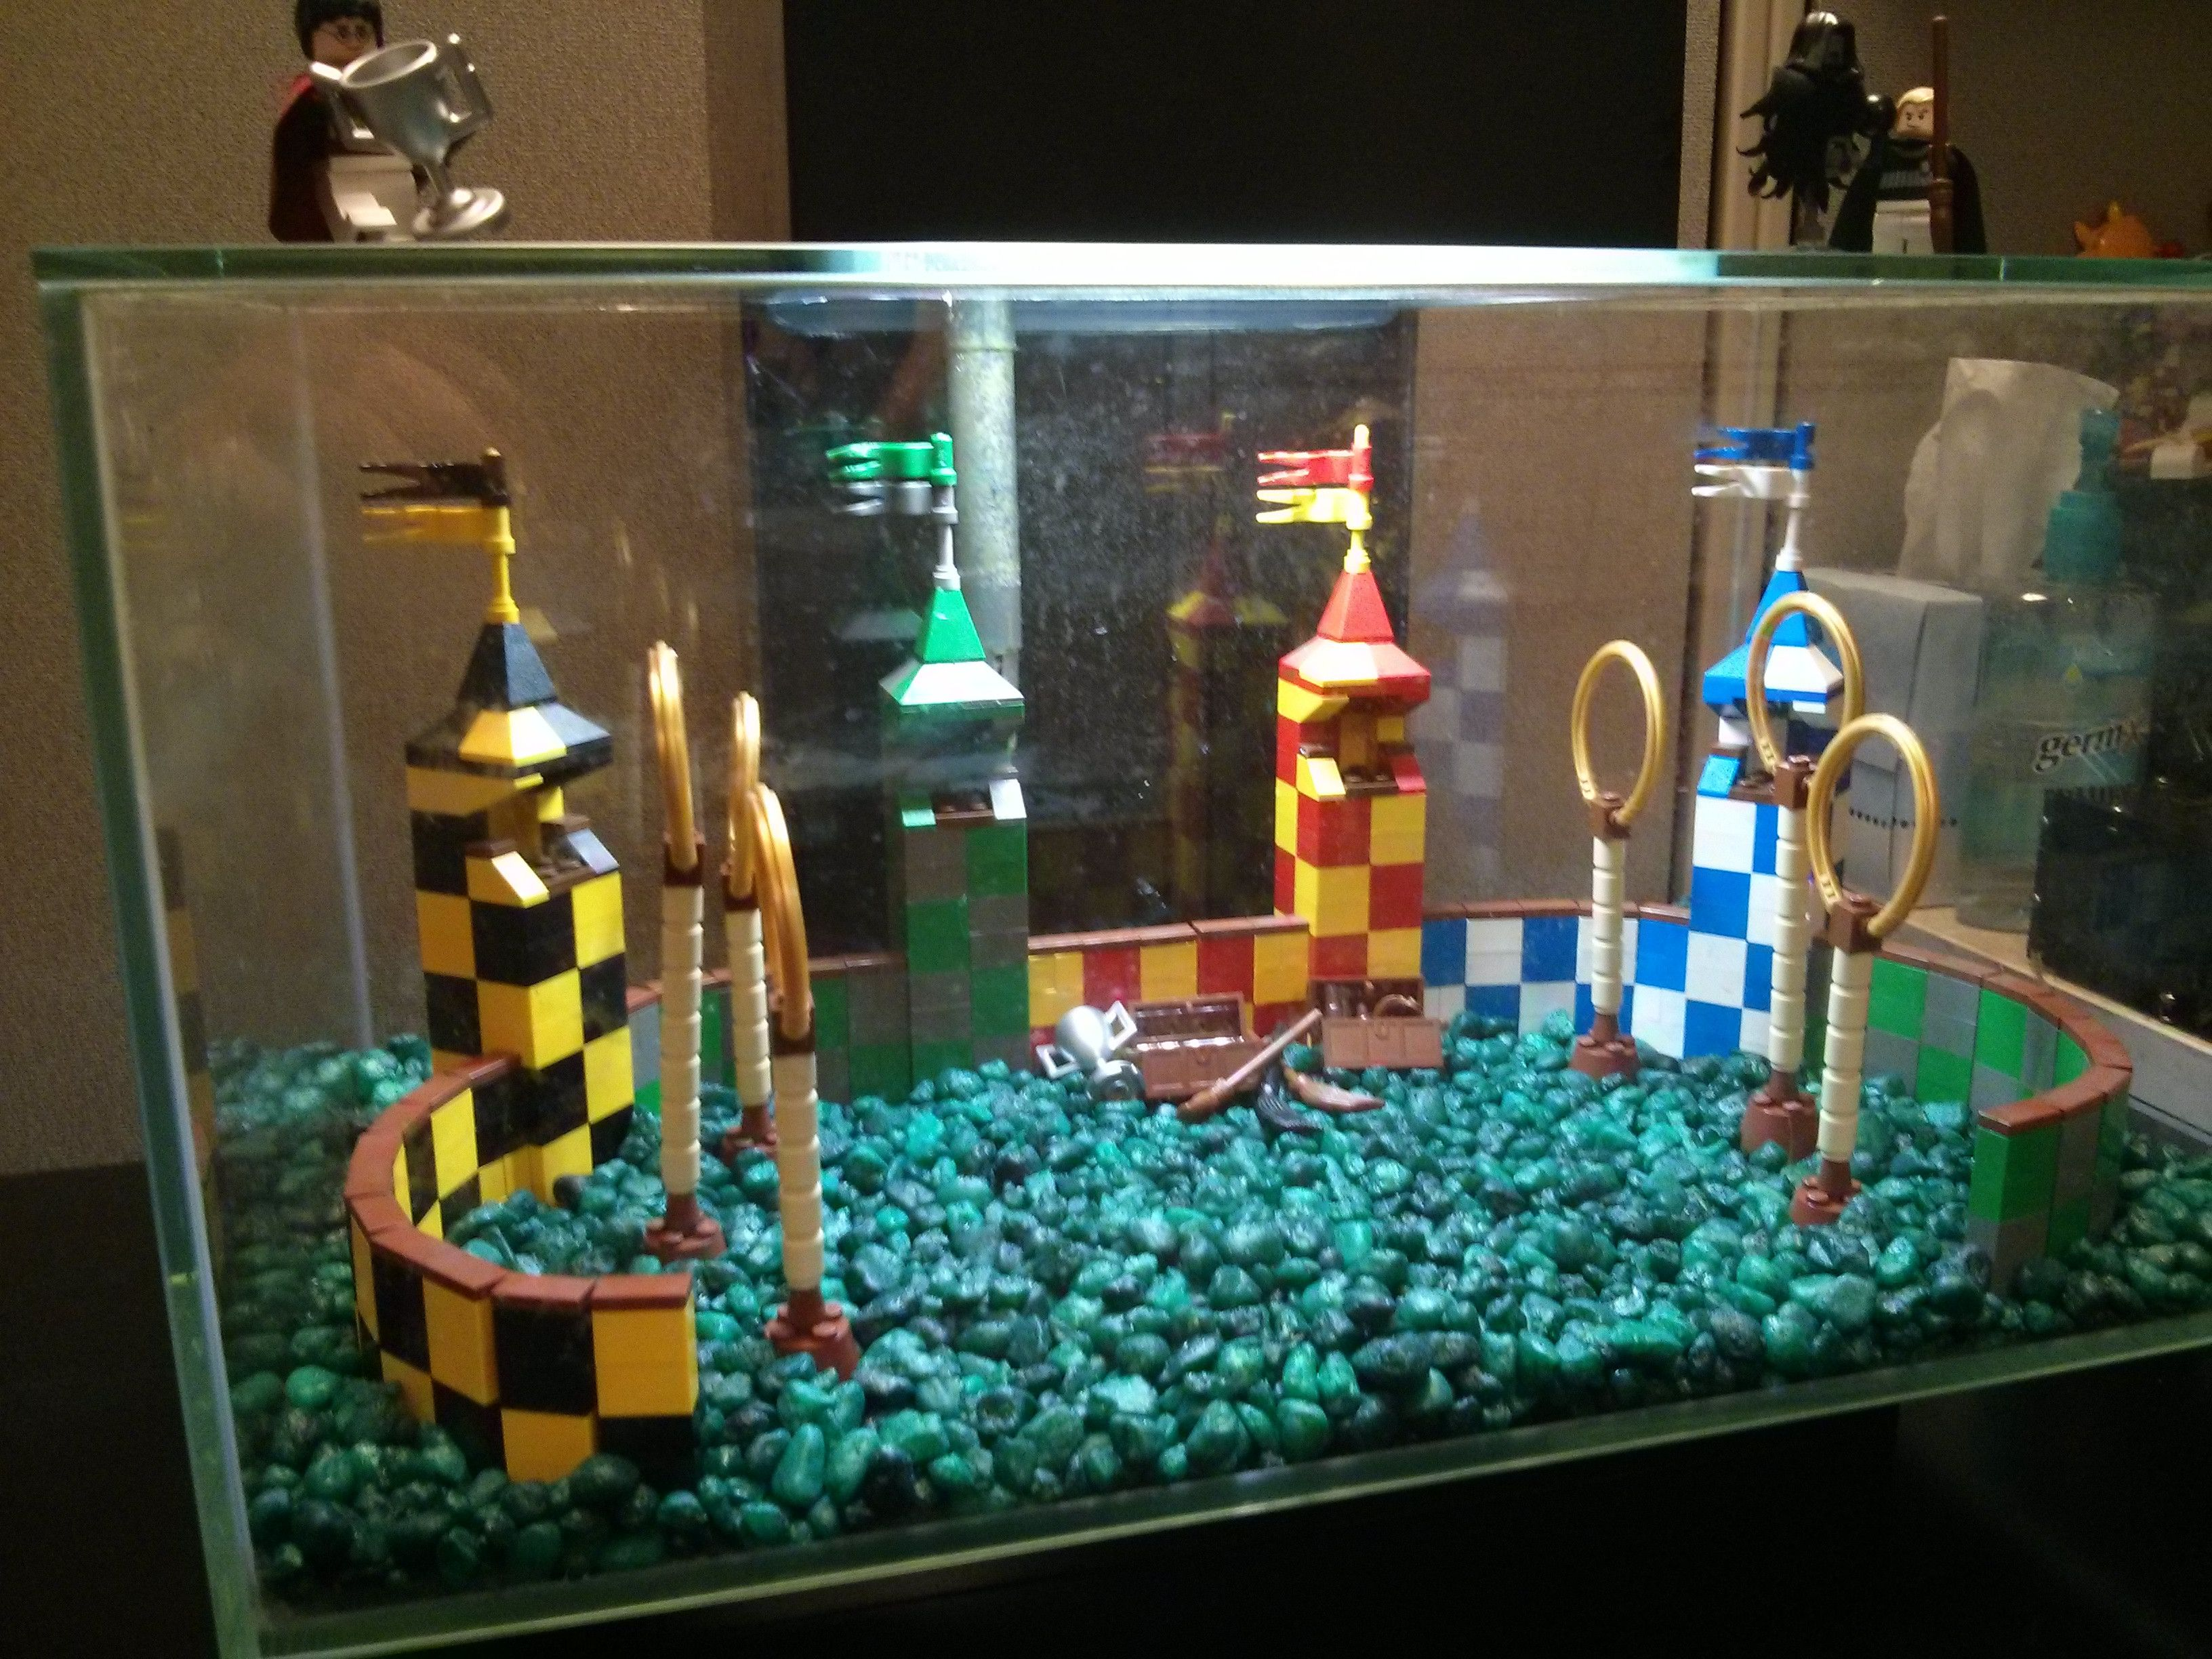 Aquarium fish tank diy - Quidditch Aquarium Decoration Build Imgur